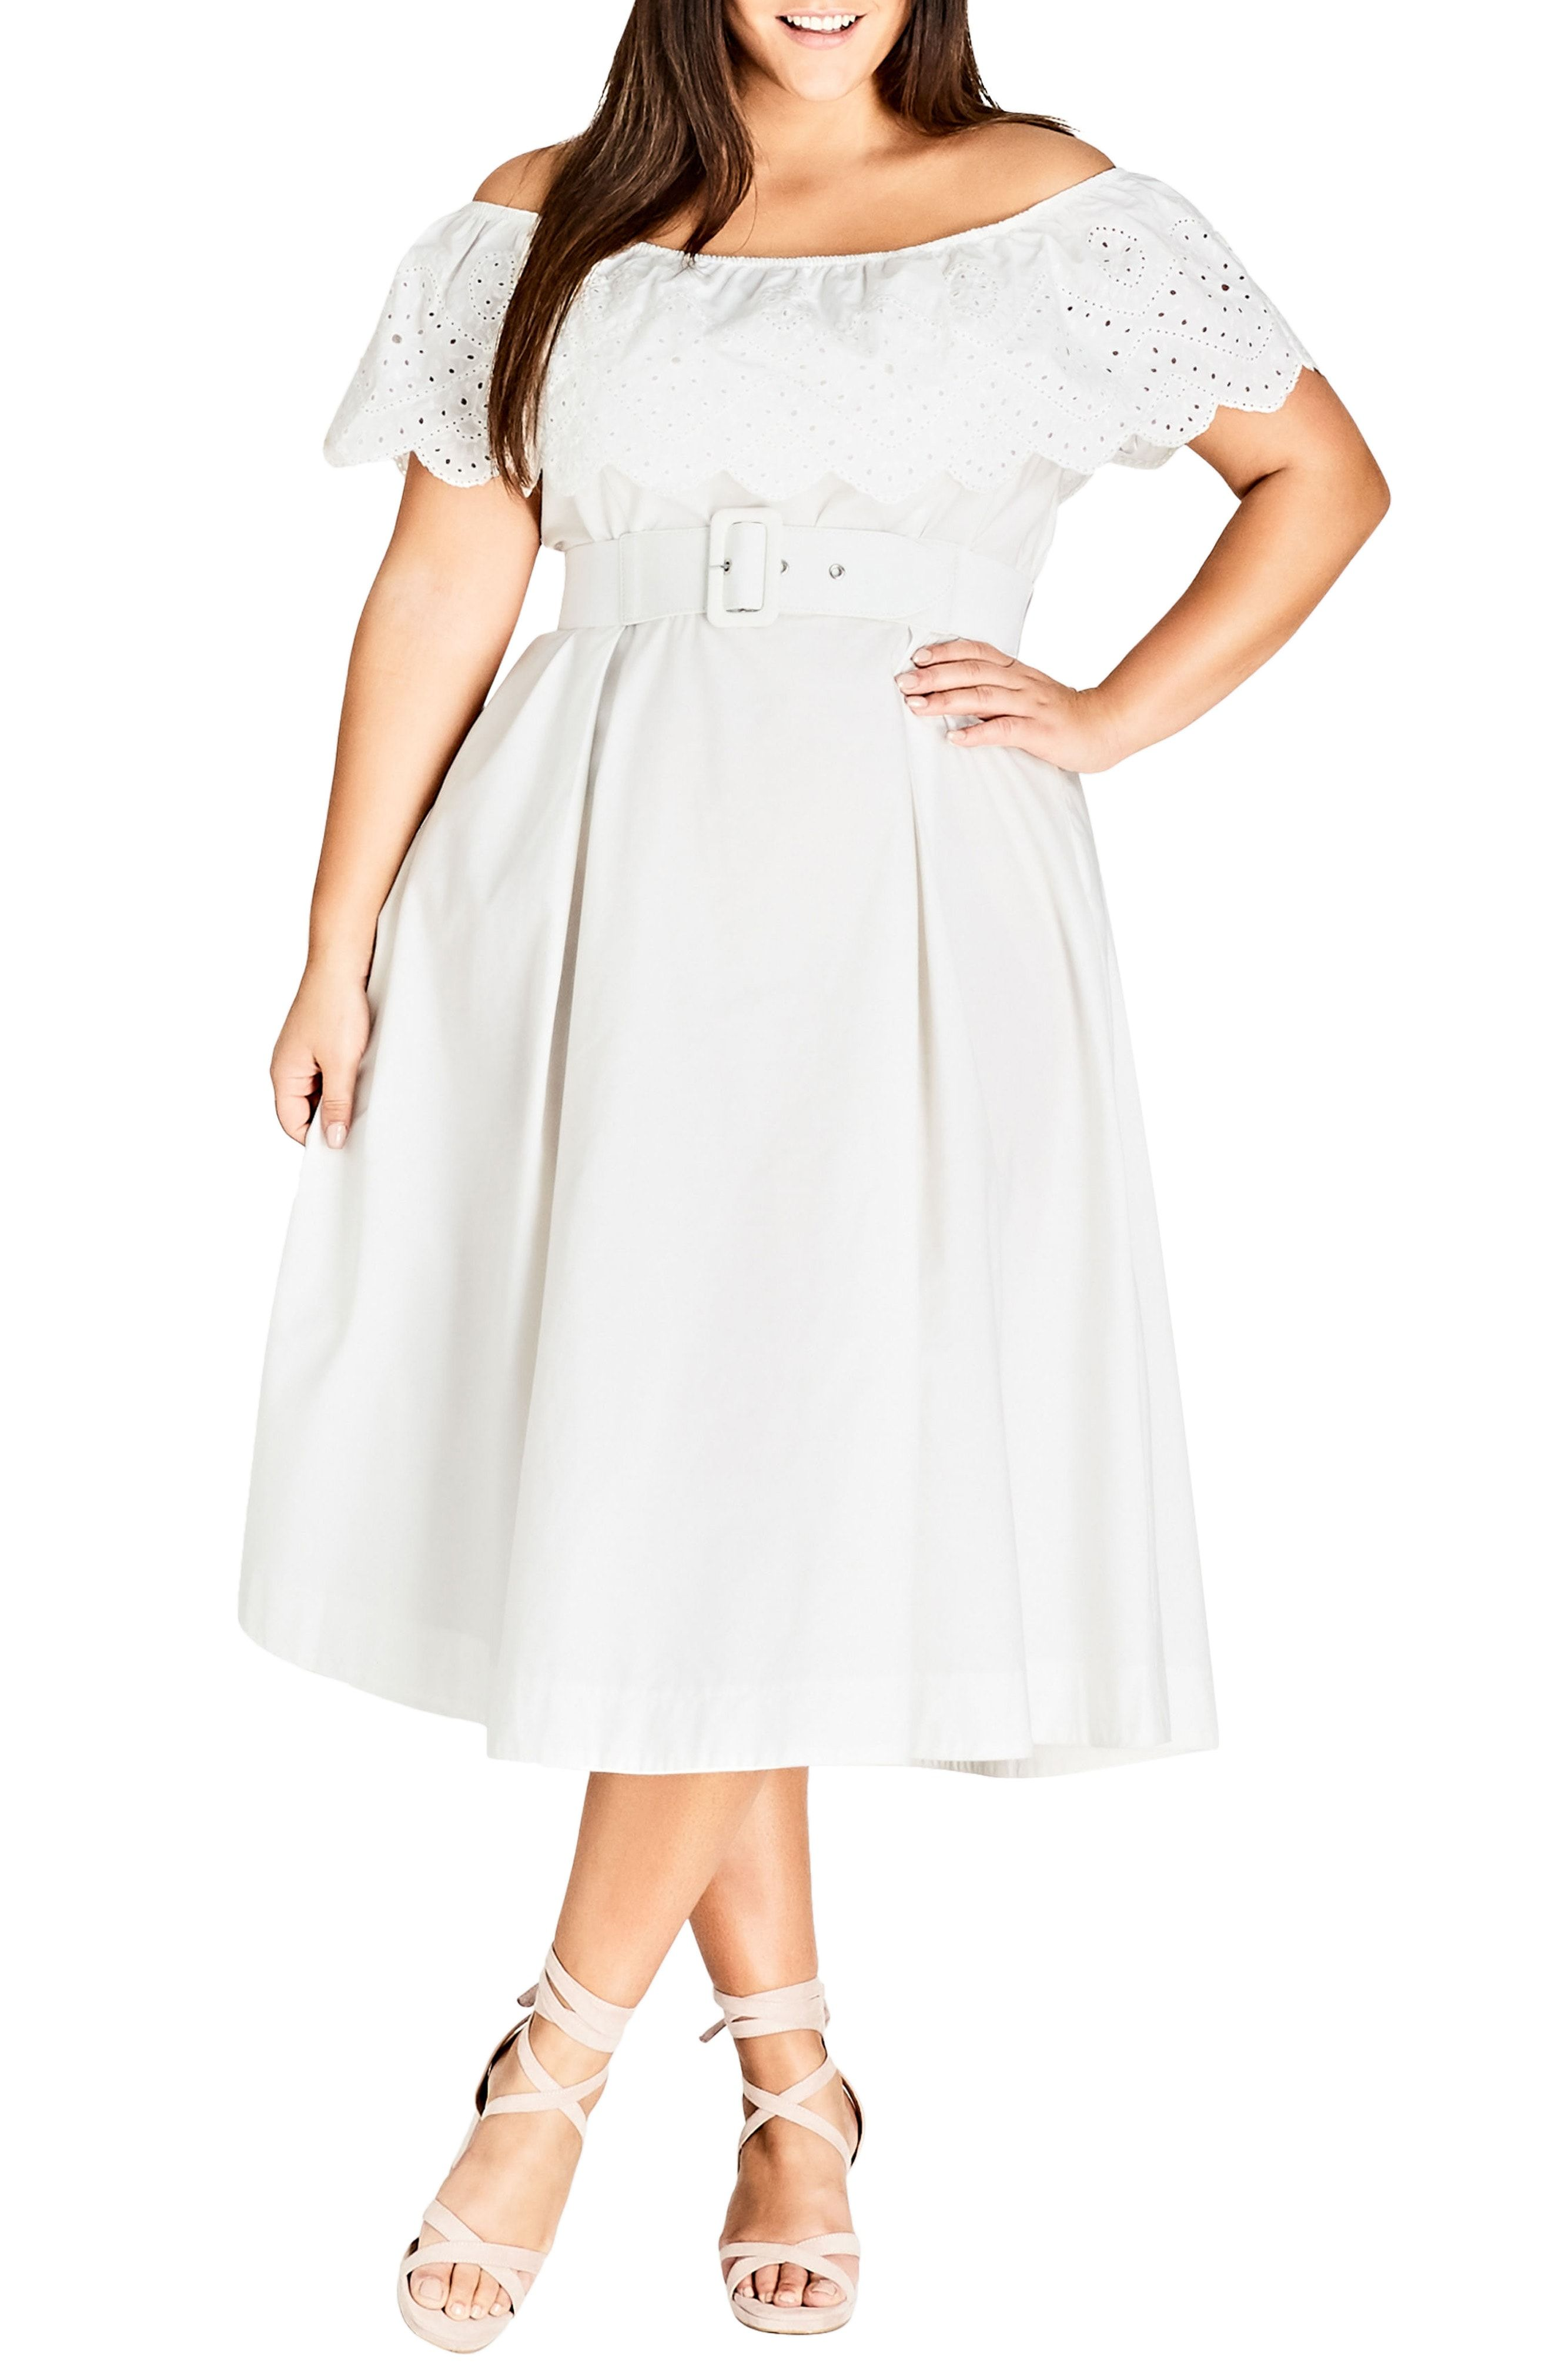 cbf35b96e96a New City Chic Embroidered Off the Shoulder Fit amp  Flare Dress (Plus Size)  online.